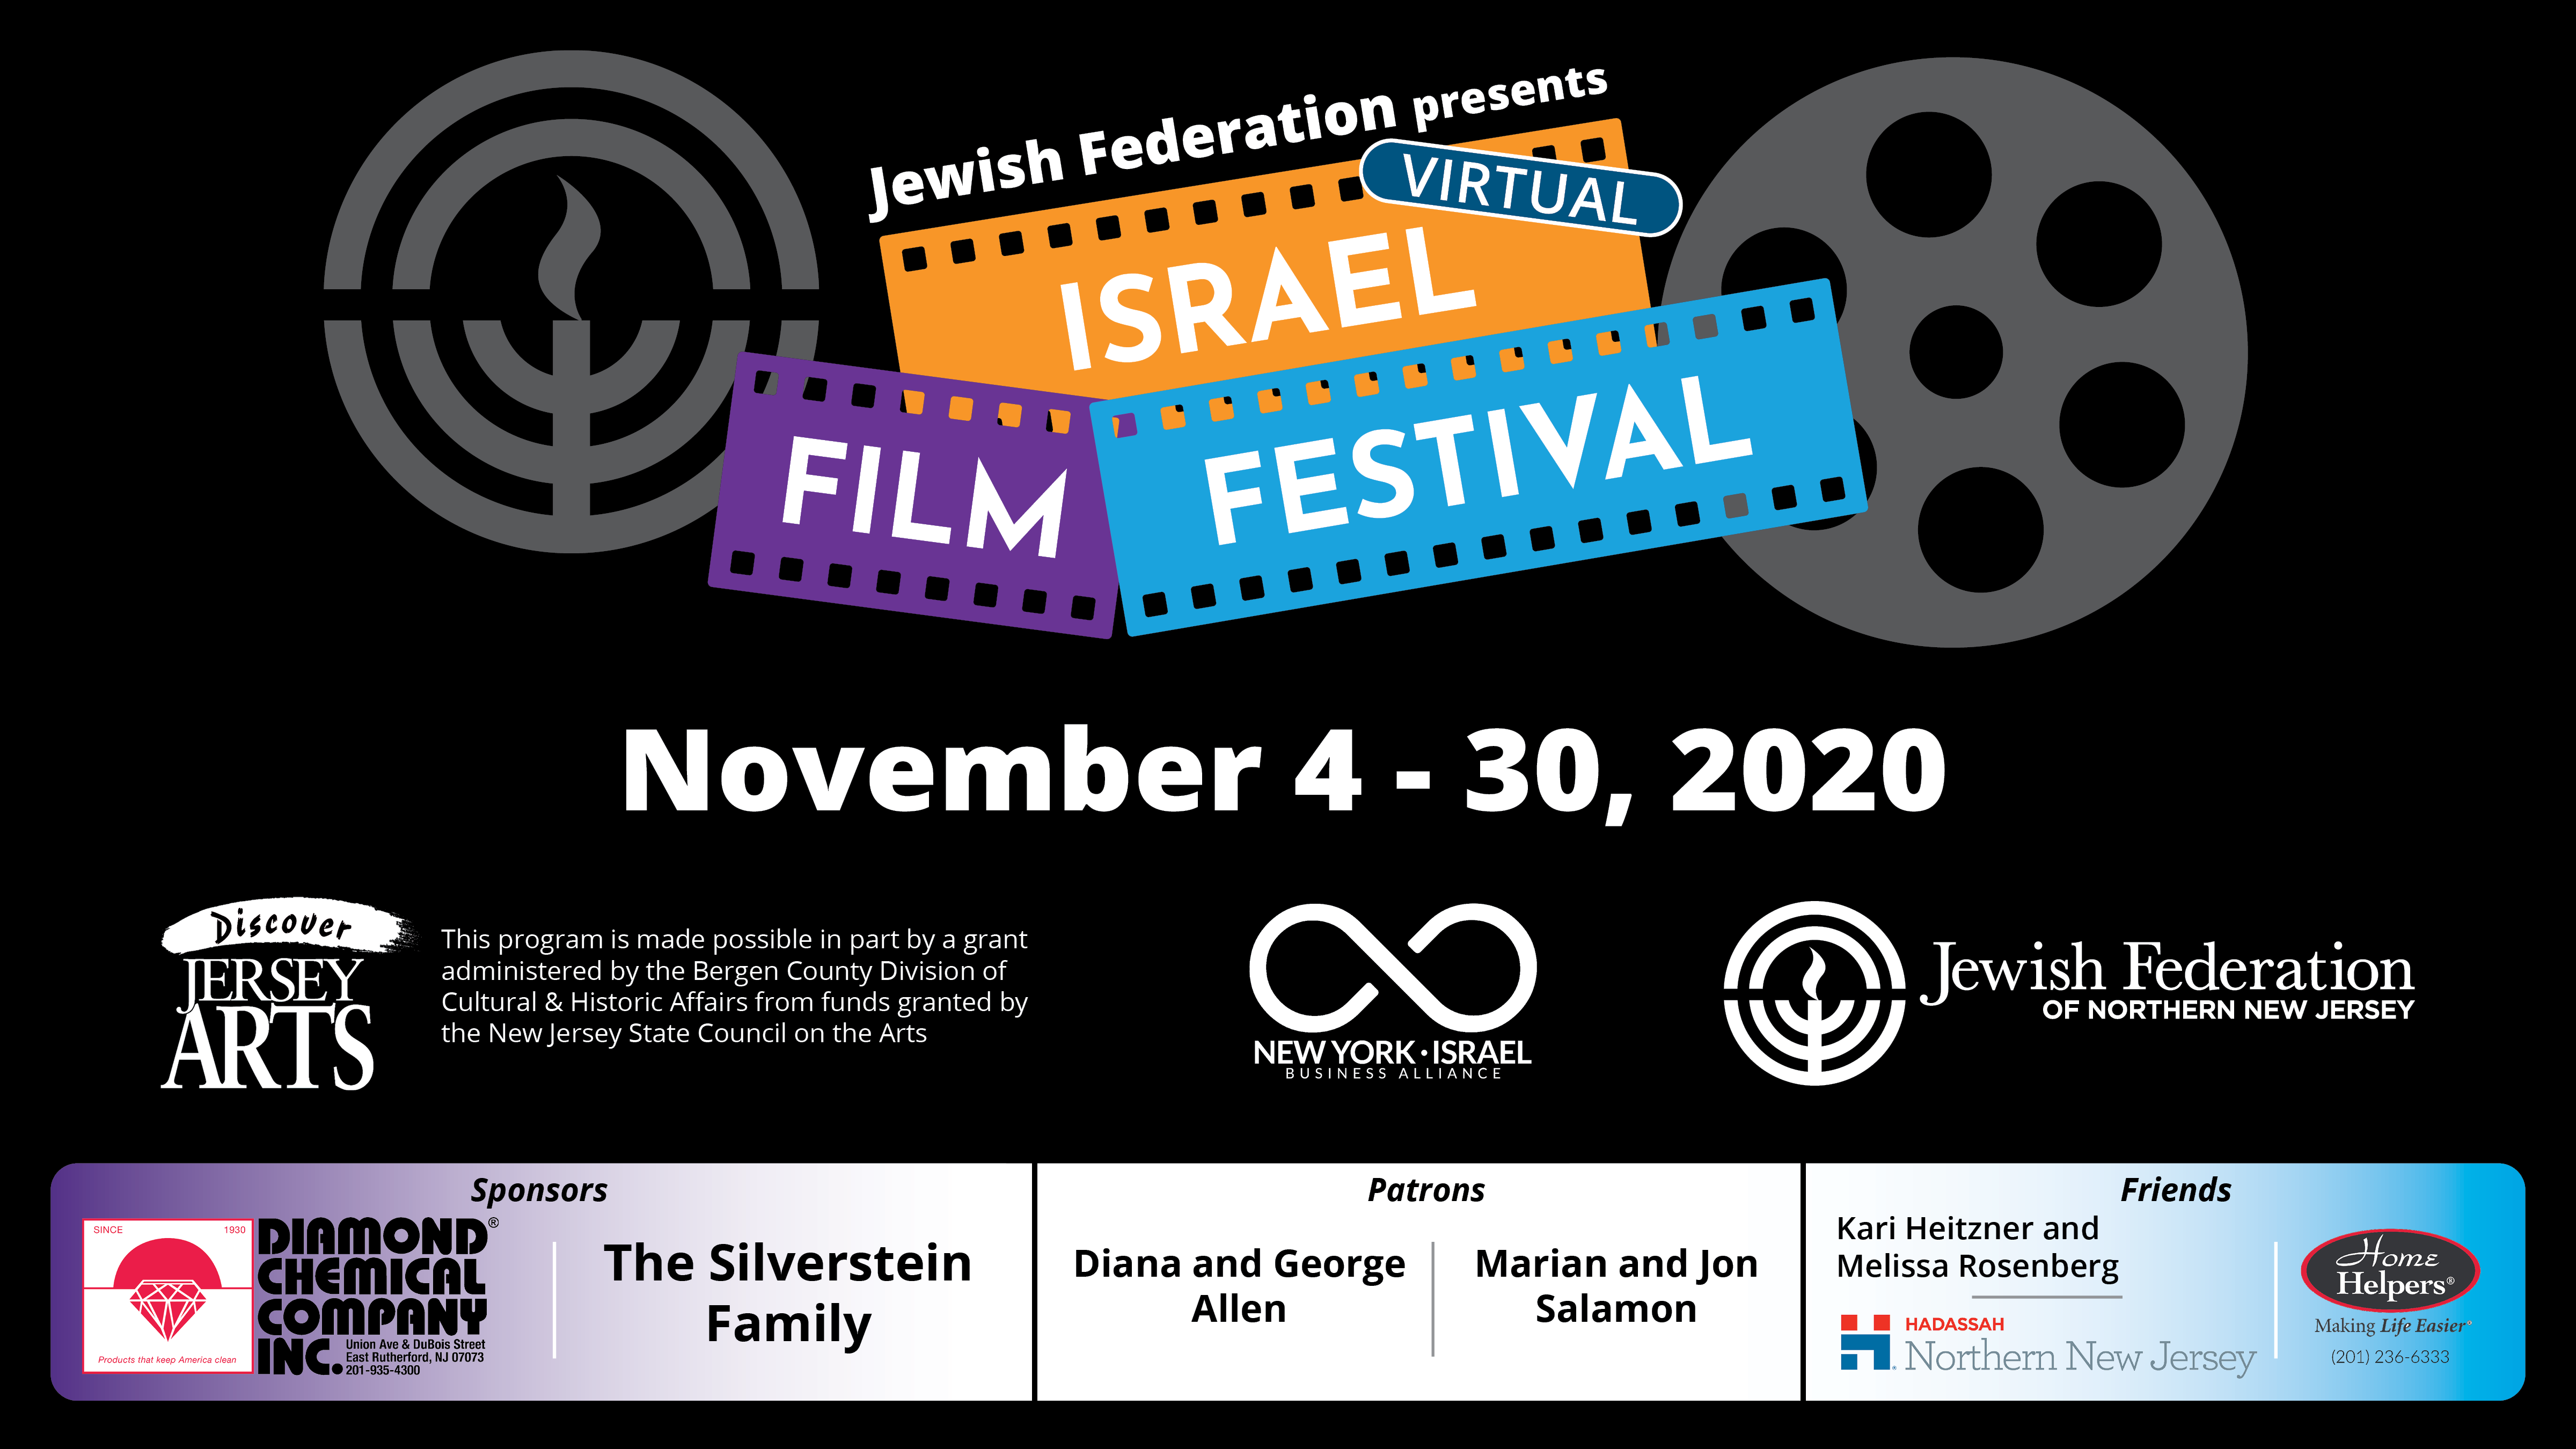 Jewish Federation of Northern New Jersey's Israel Film Festival